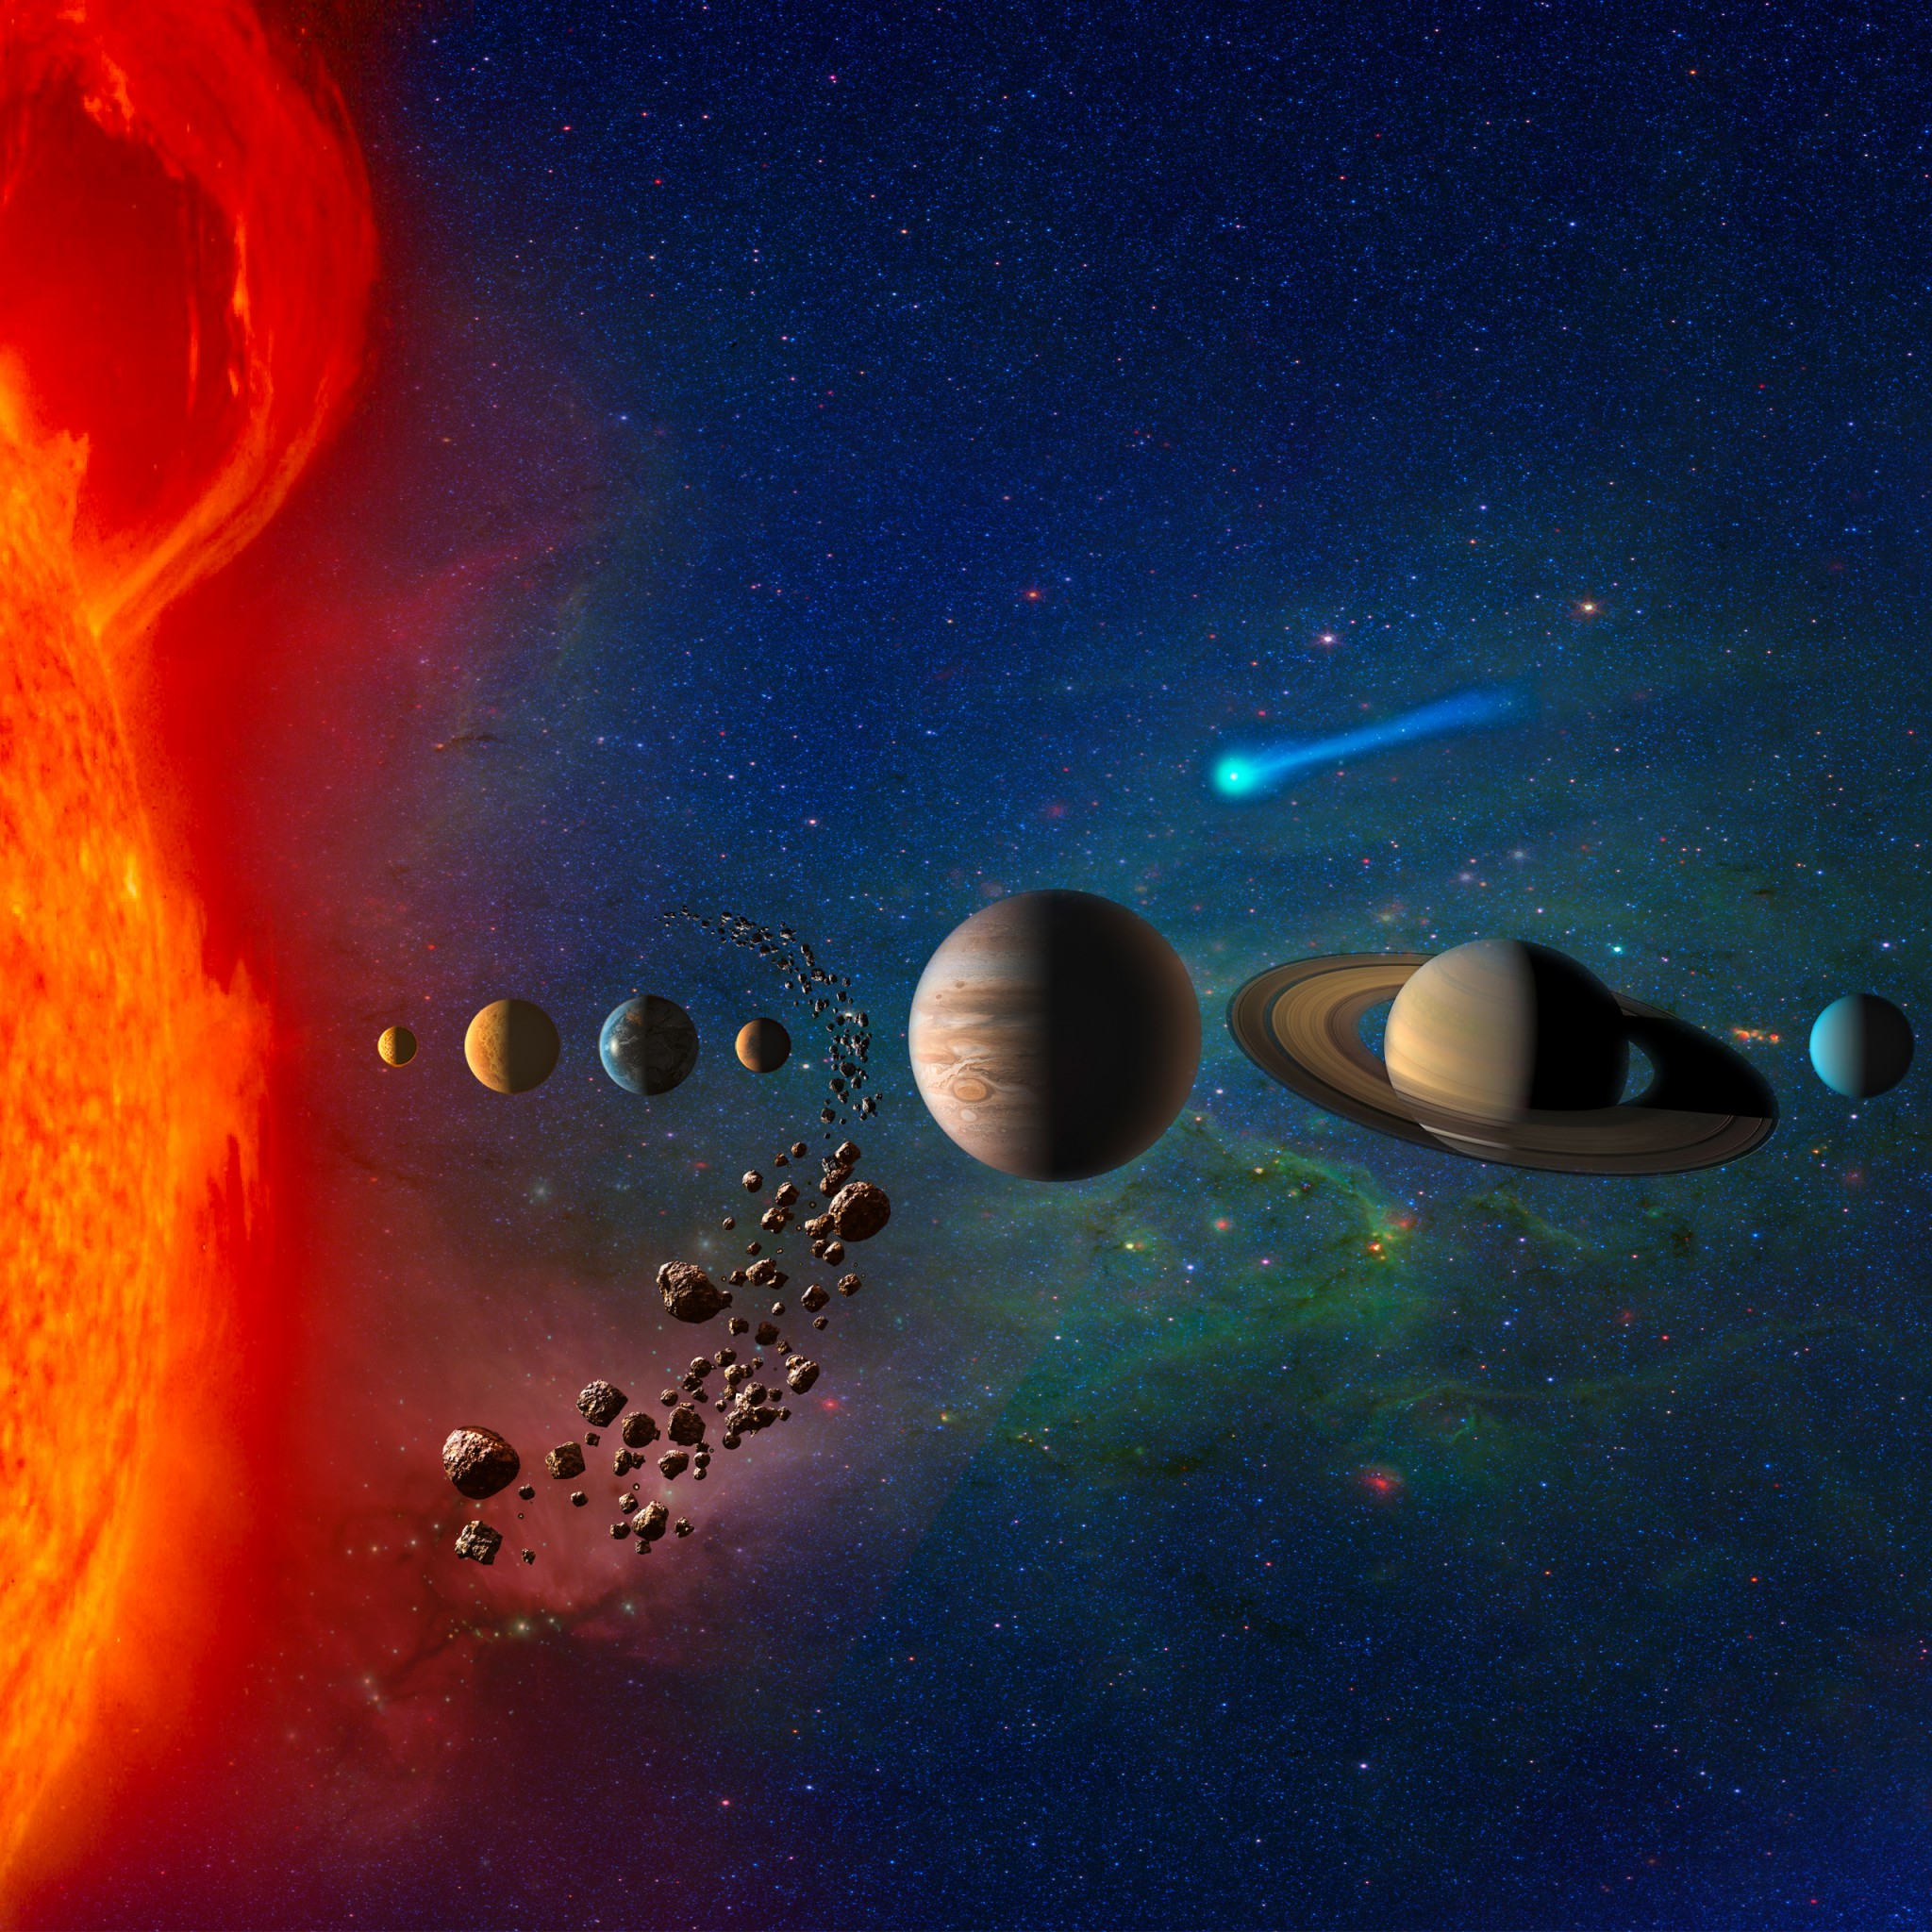 planets in solar system 4k wallpapers